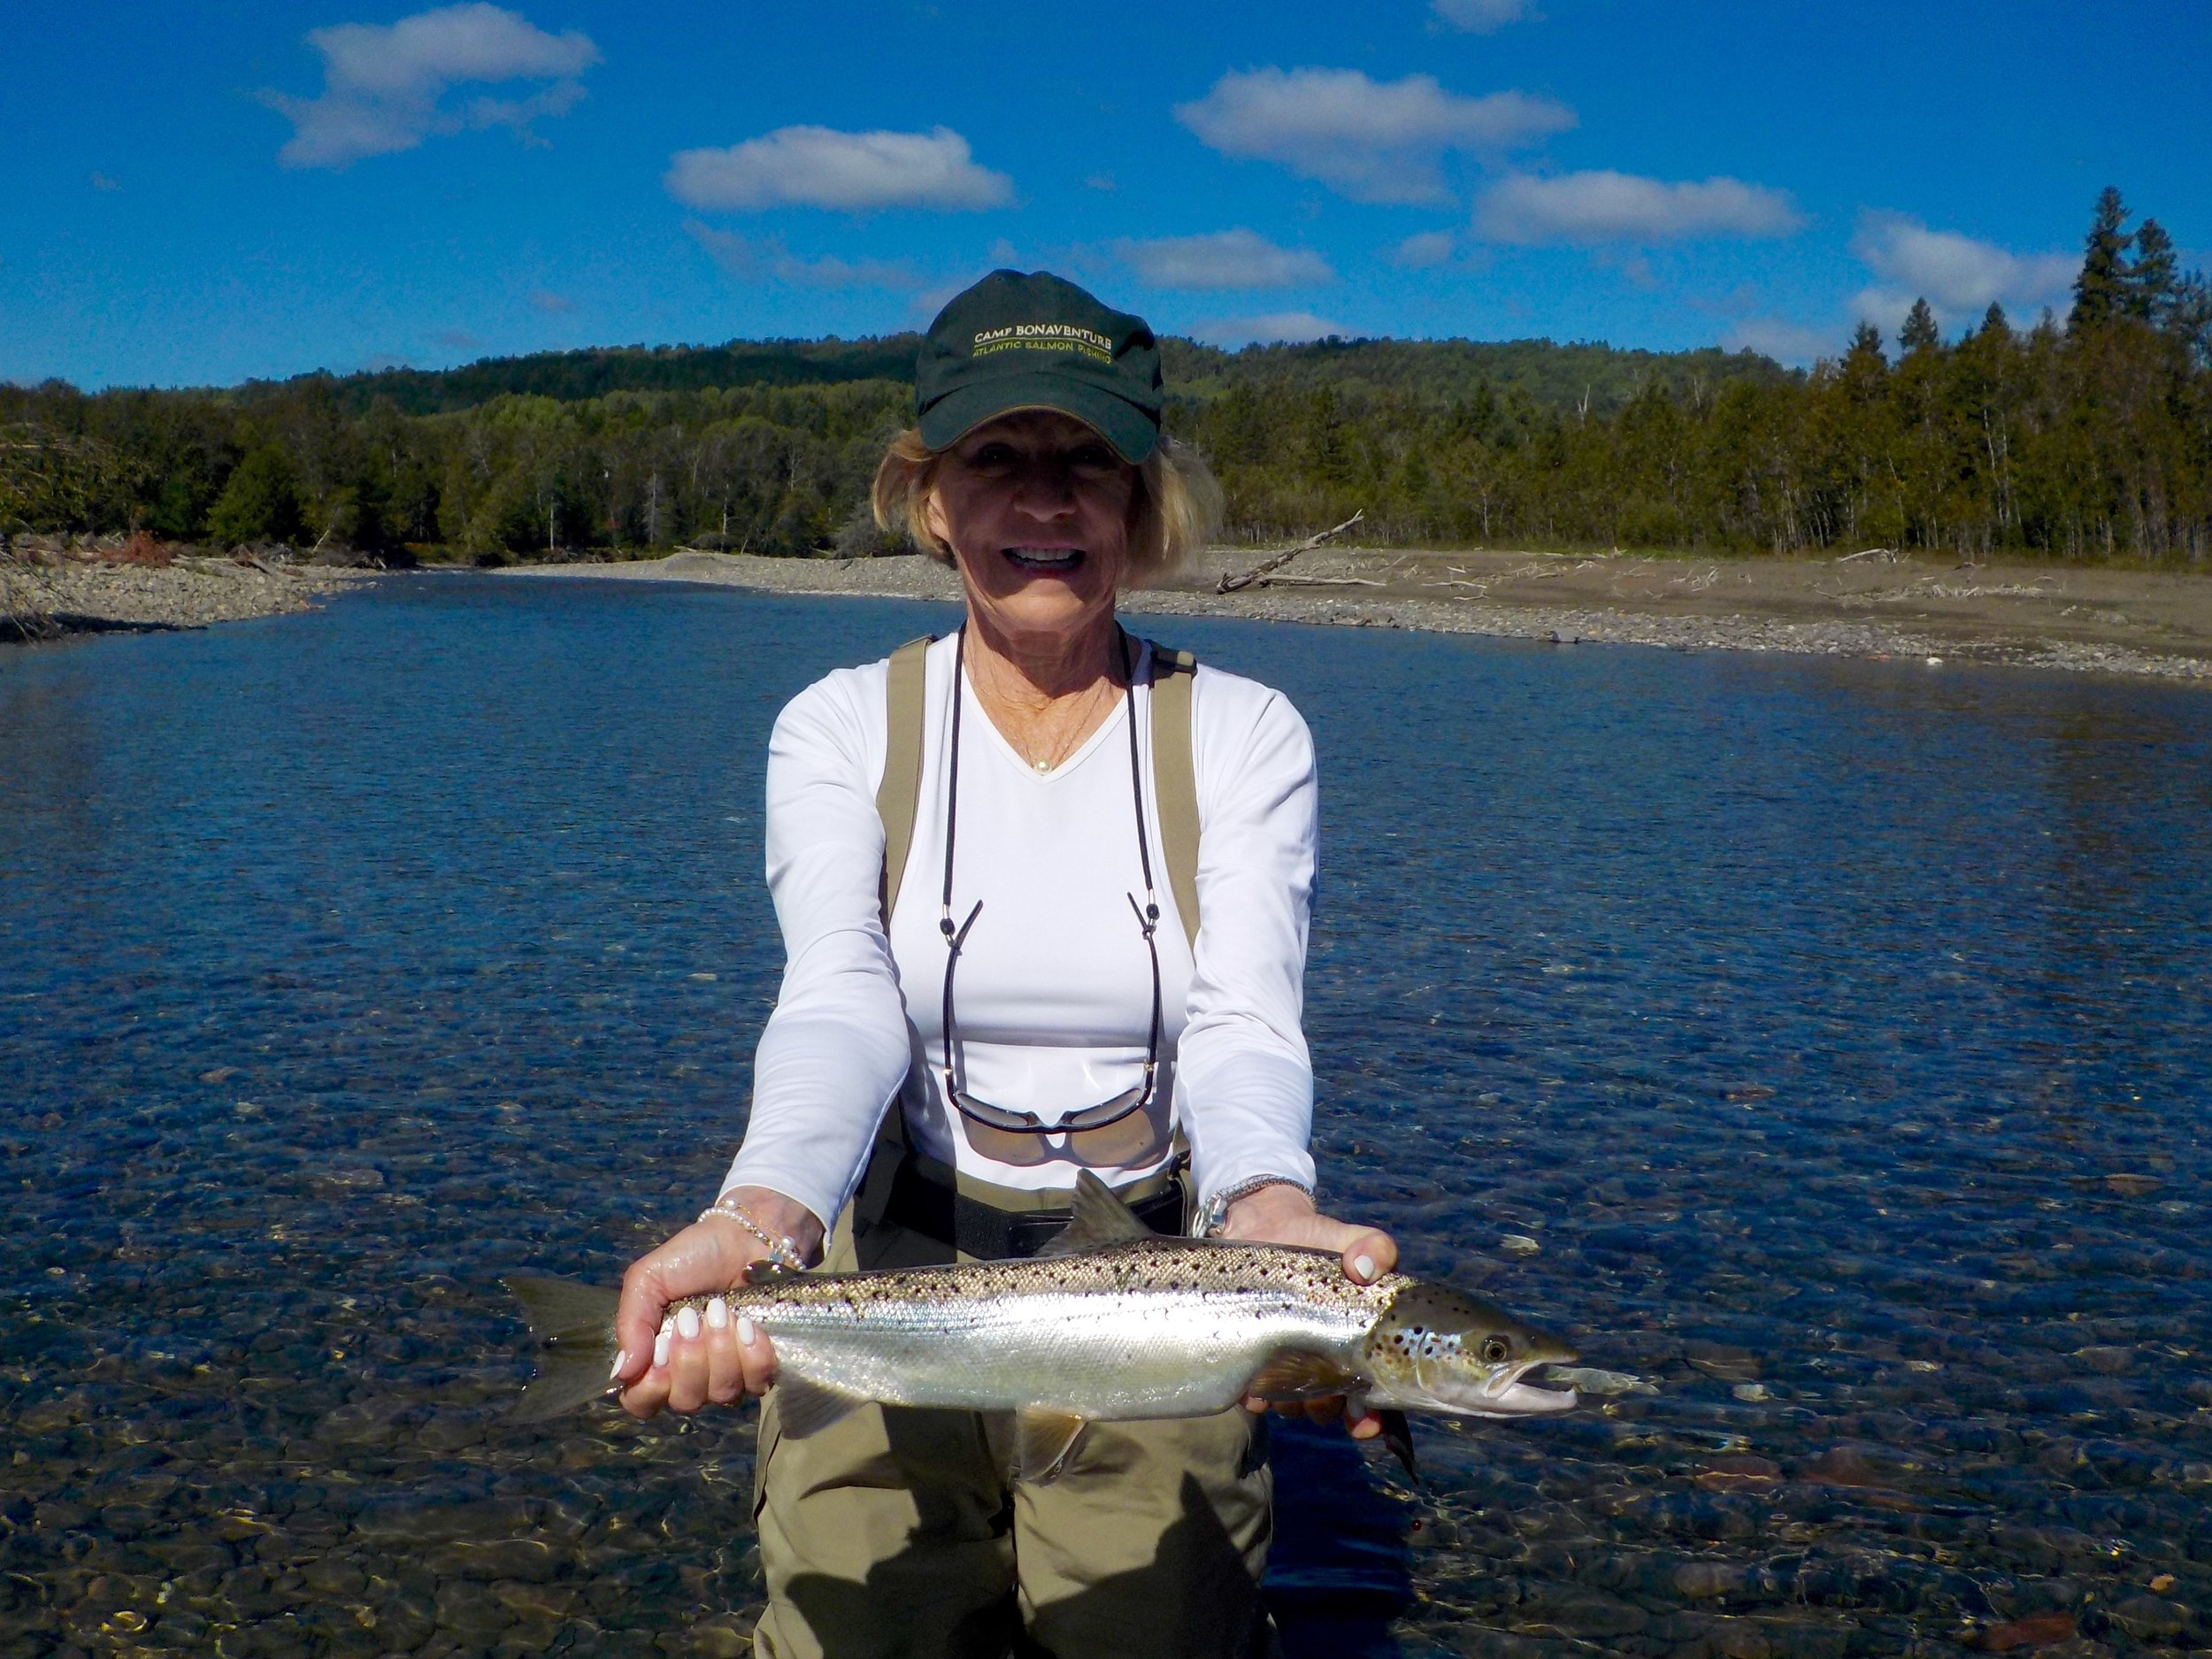 Sharon Dombrowski is a regular September visitor to the lodge, she's a great lady and angler, well done Sharon, see you next year!